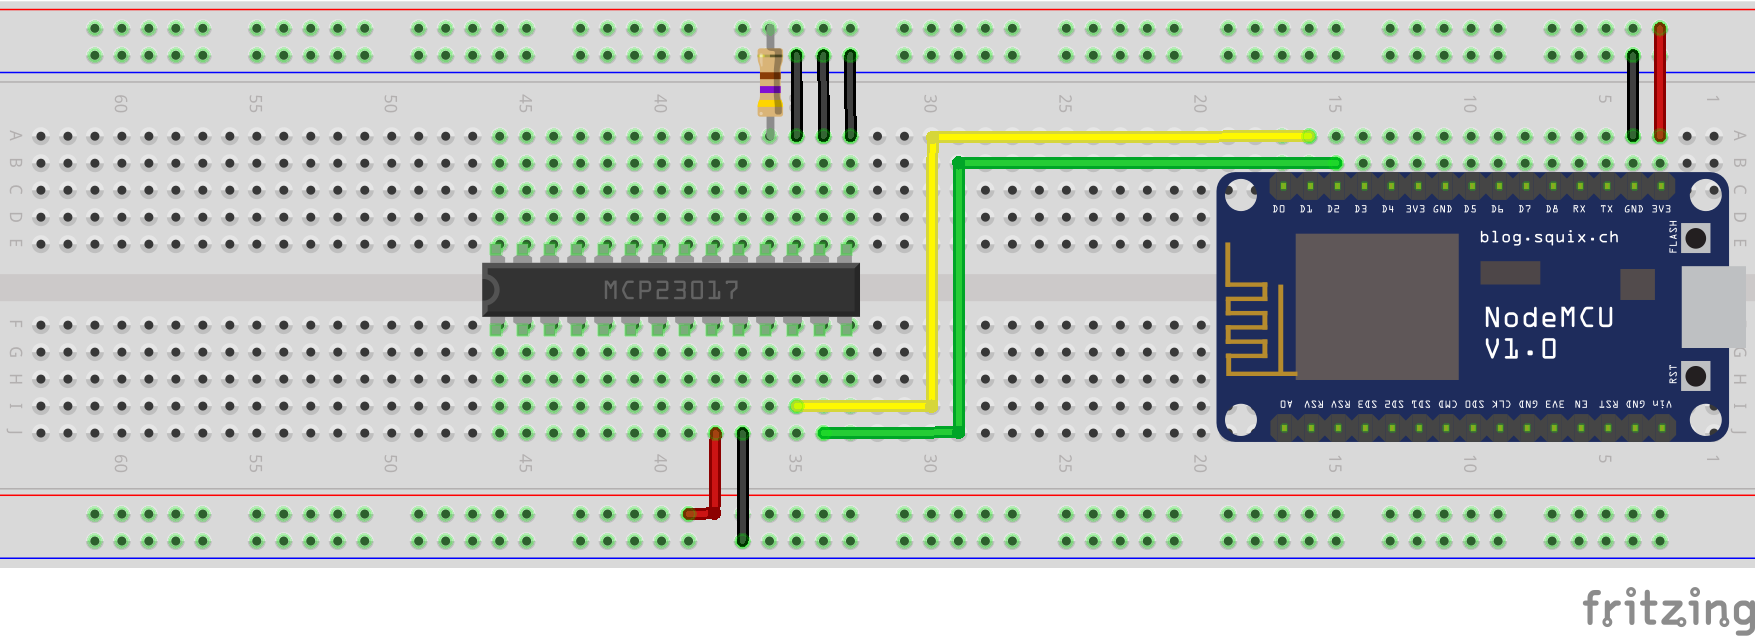 More GPIOs for the ESP8266 with the MCP23017 - Wilko Vehreke